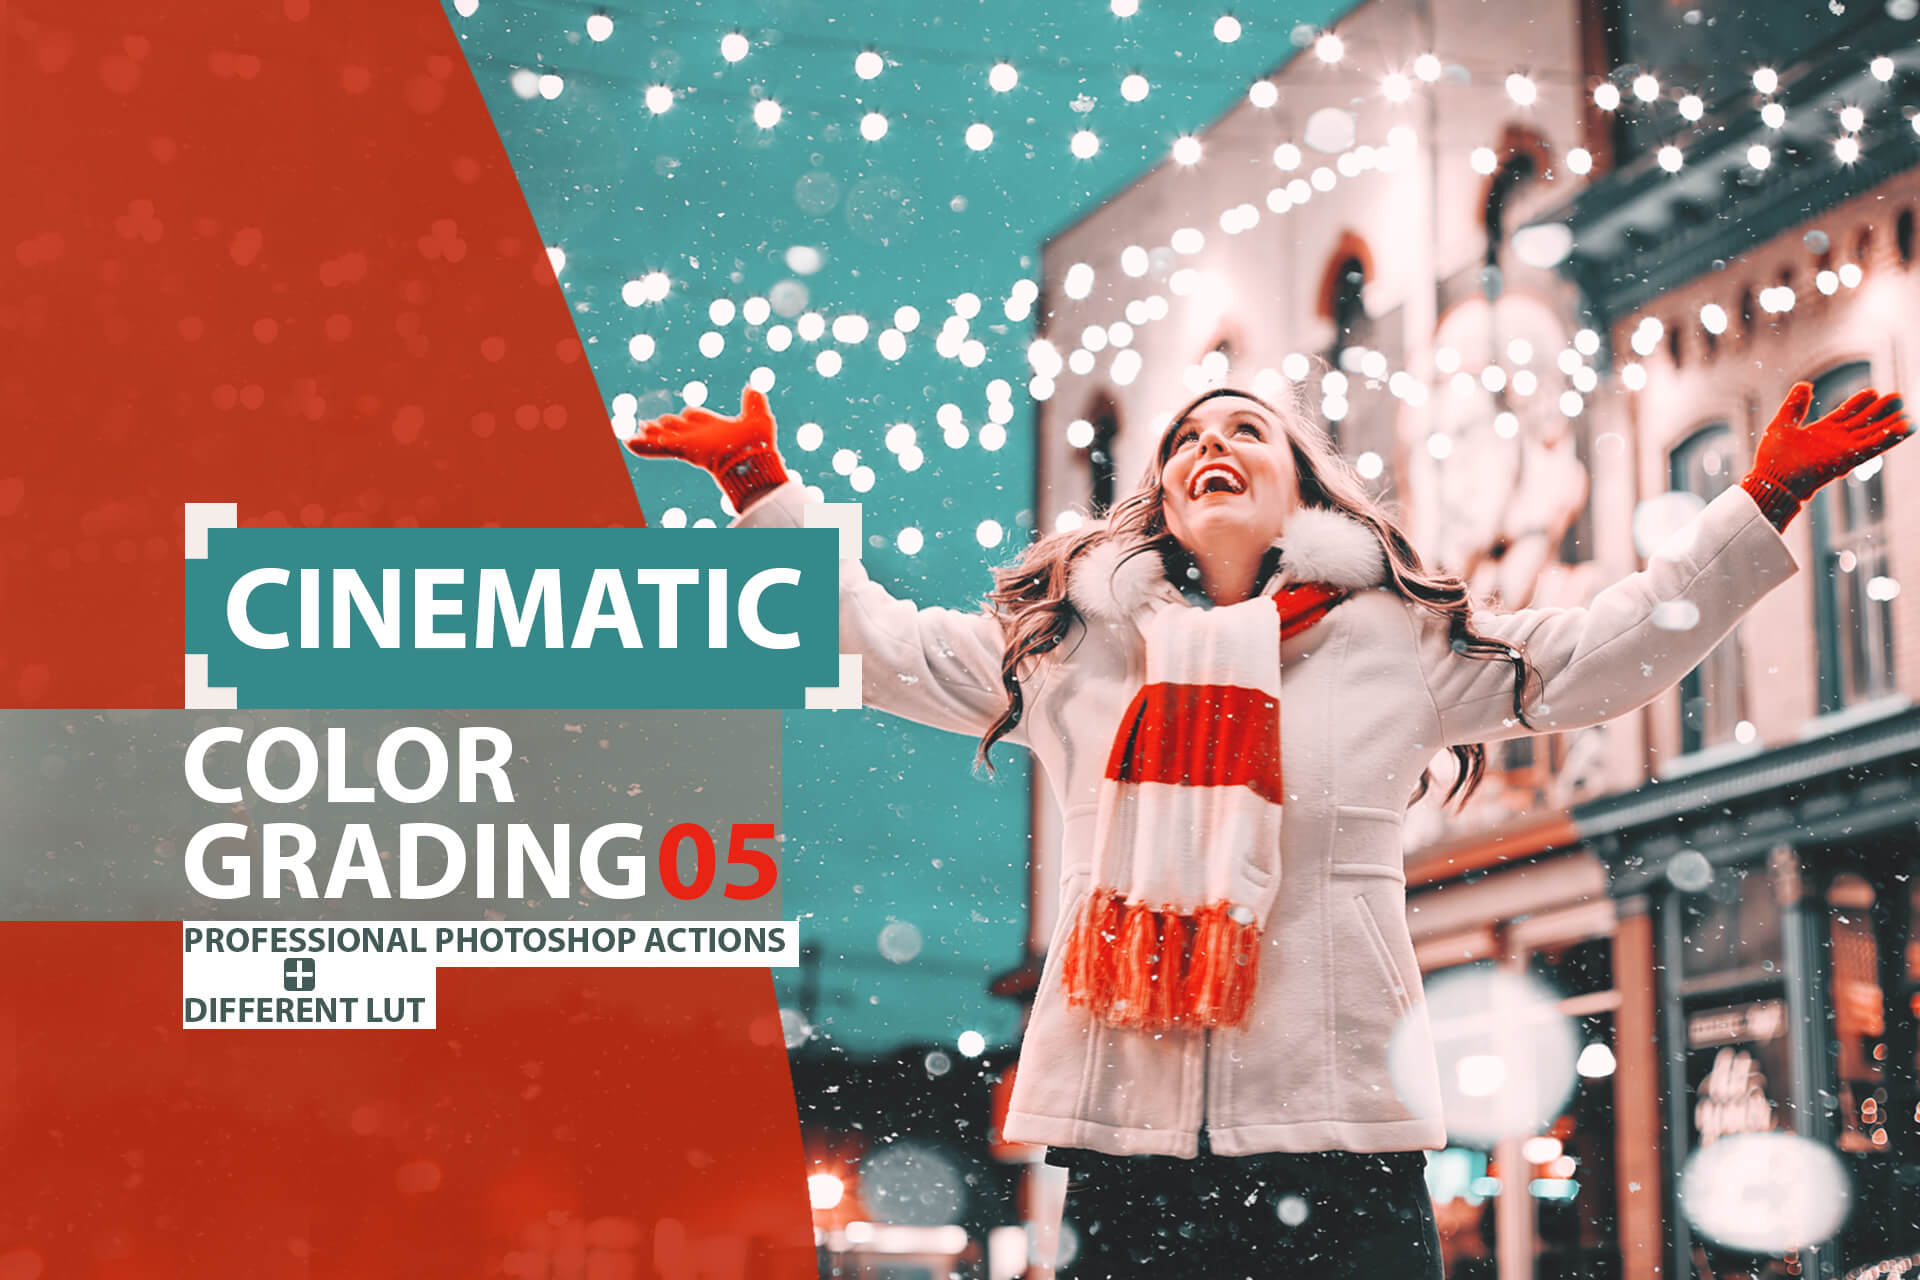 Cinematic color grading 05 Photoshop Actions example image 1